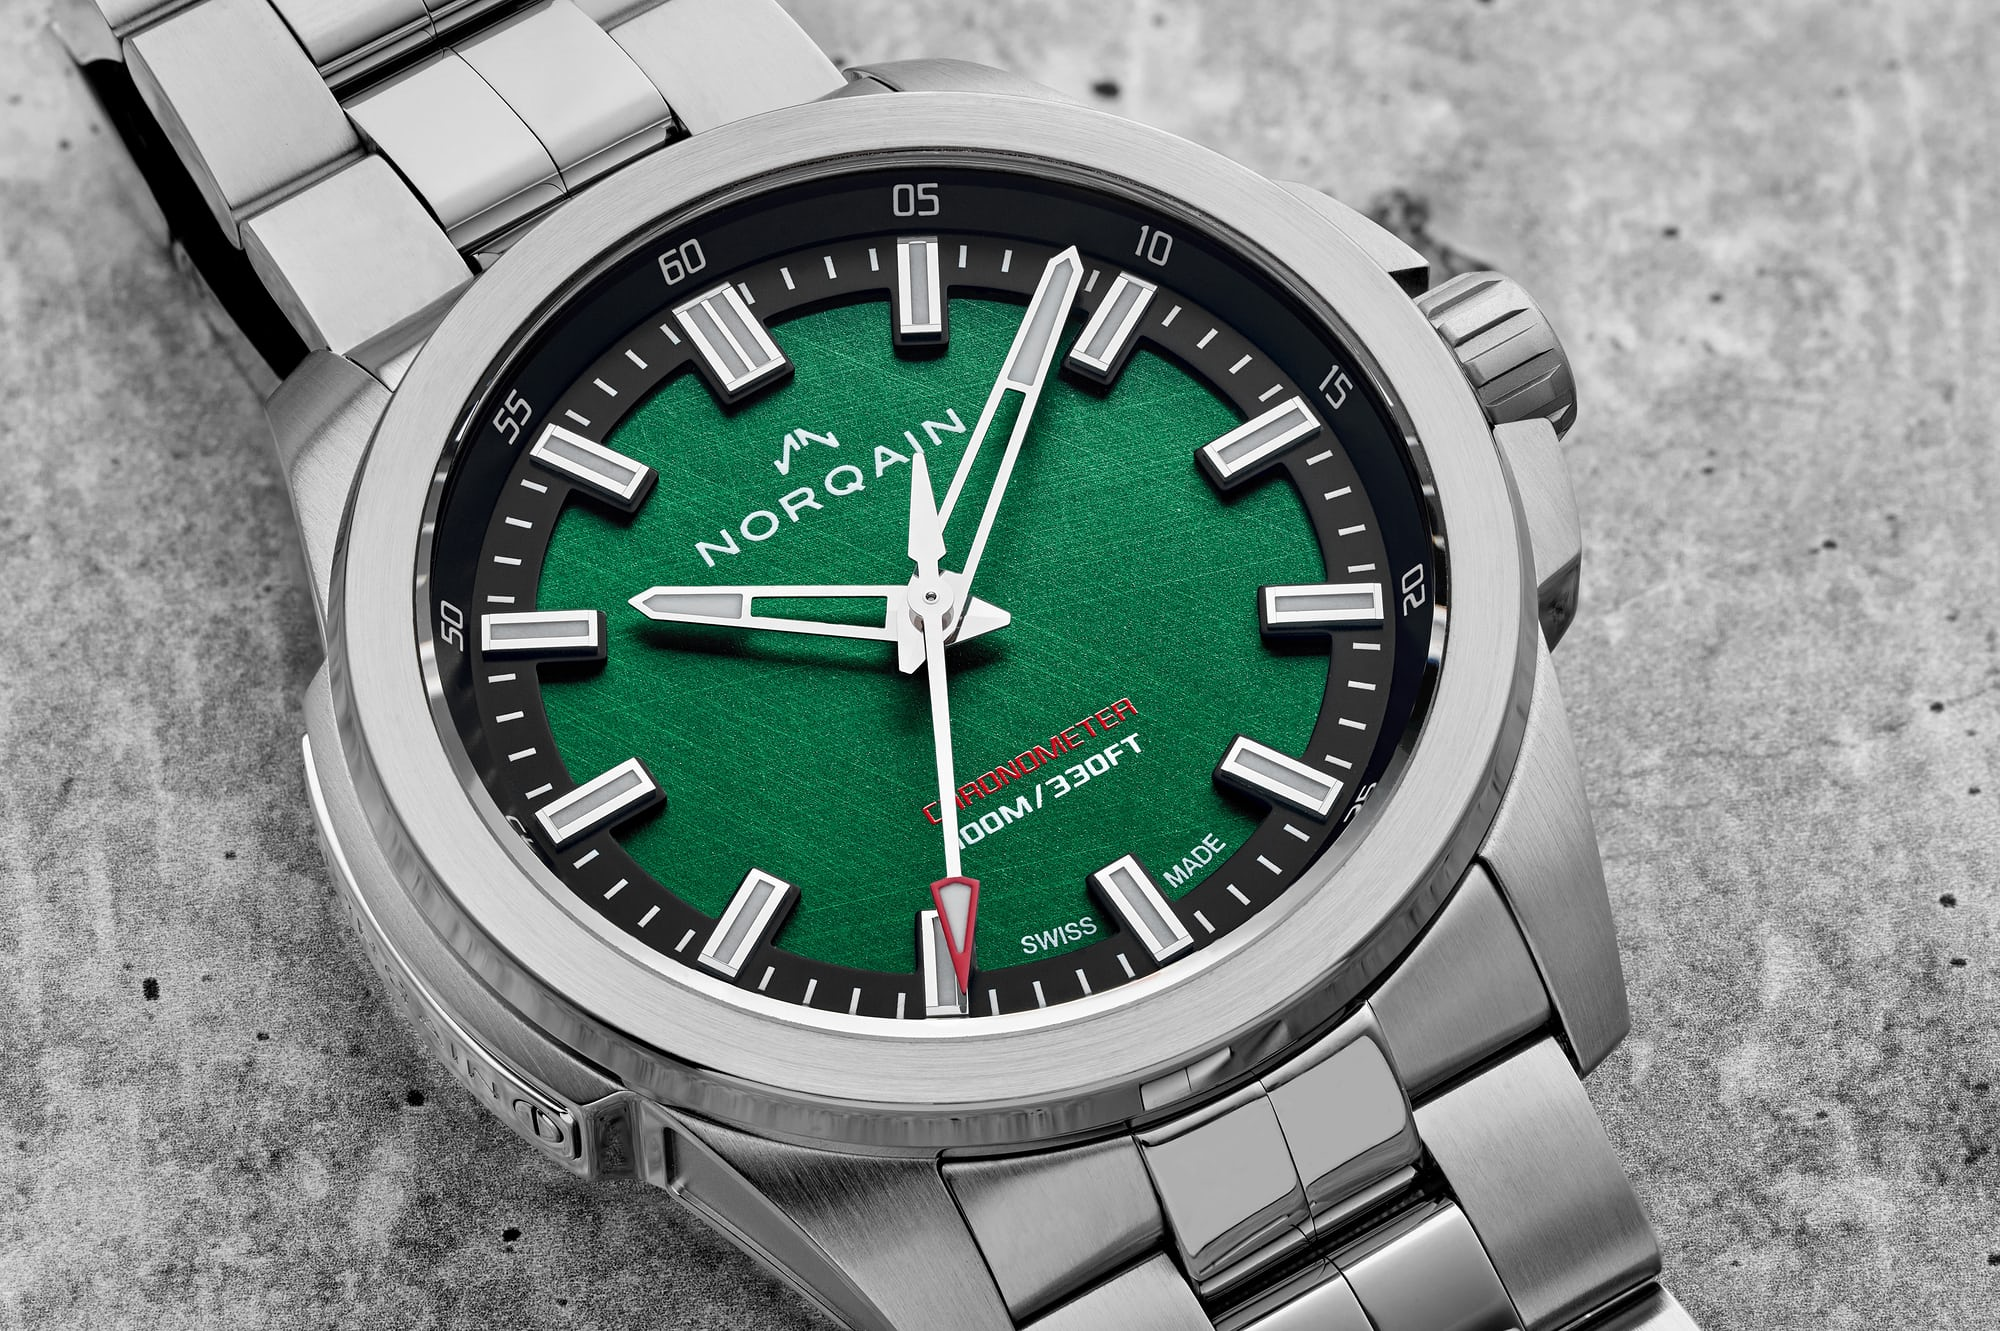 """<p><a href=""""https://shop.hodinkee.com/products/norqain-independence-20-scratched-forest-green-dial-bracelet-limited-edition?_pos=1&amp;_sid=921a1296f&amp;_ss=r&amp;variant=32700298035275"""" rel=""""noopener"""" target=""""_blank""""><u>NORQAIN Independence 20</u></a></p>"""